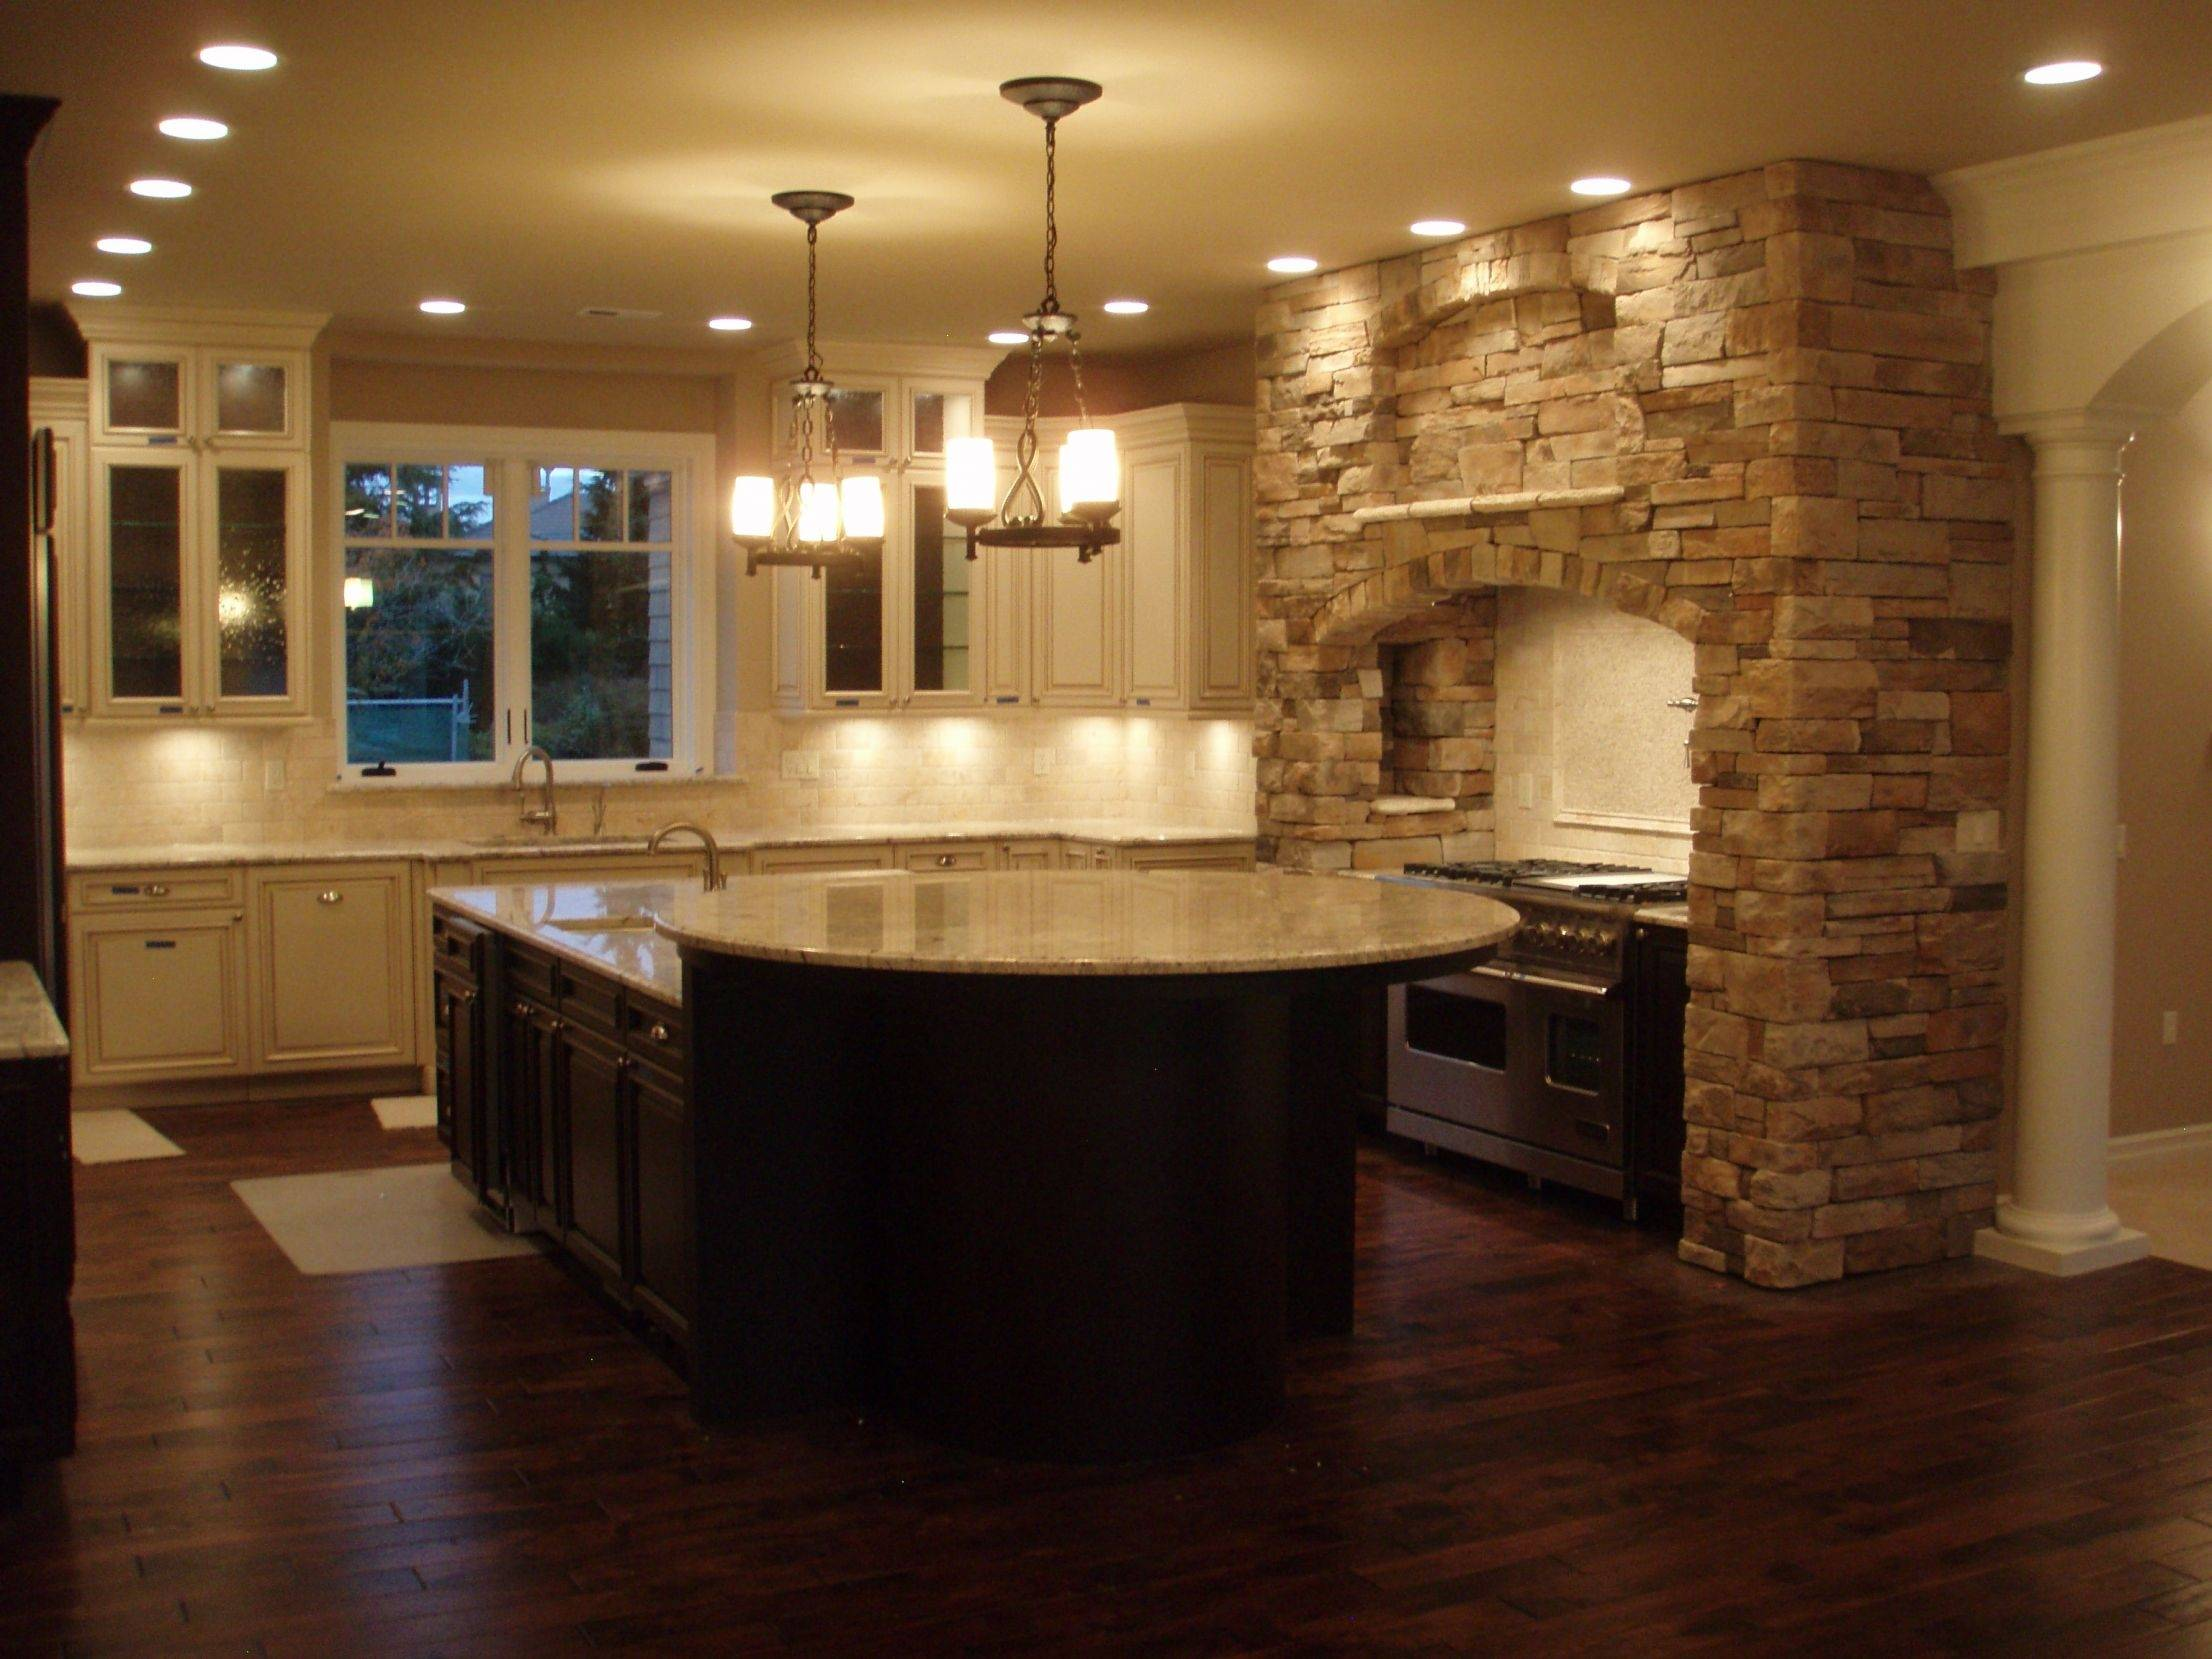 Download Kitchen Wallpaper Lowes Gallery